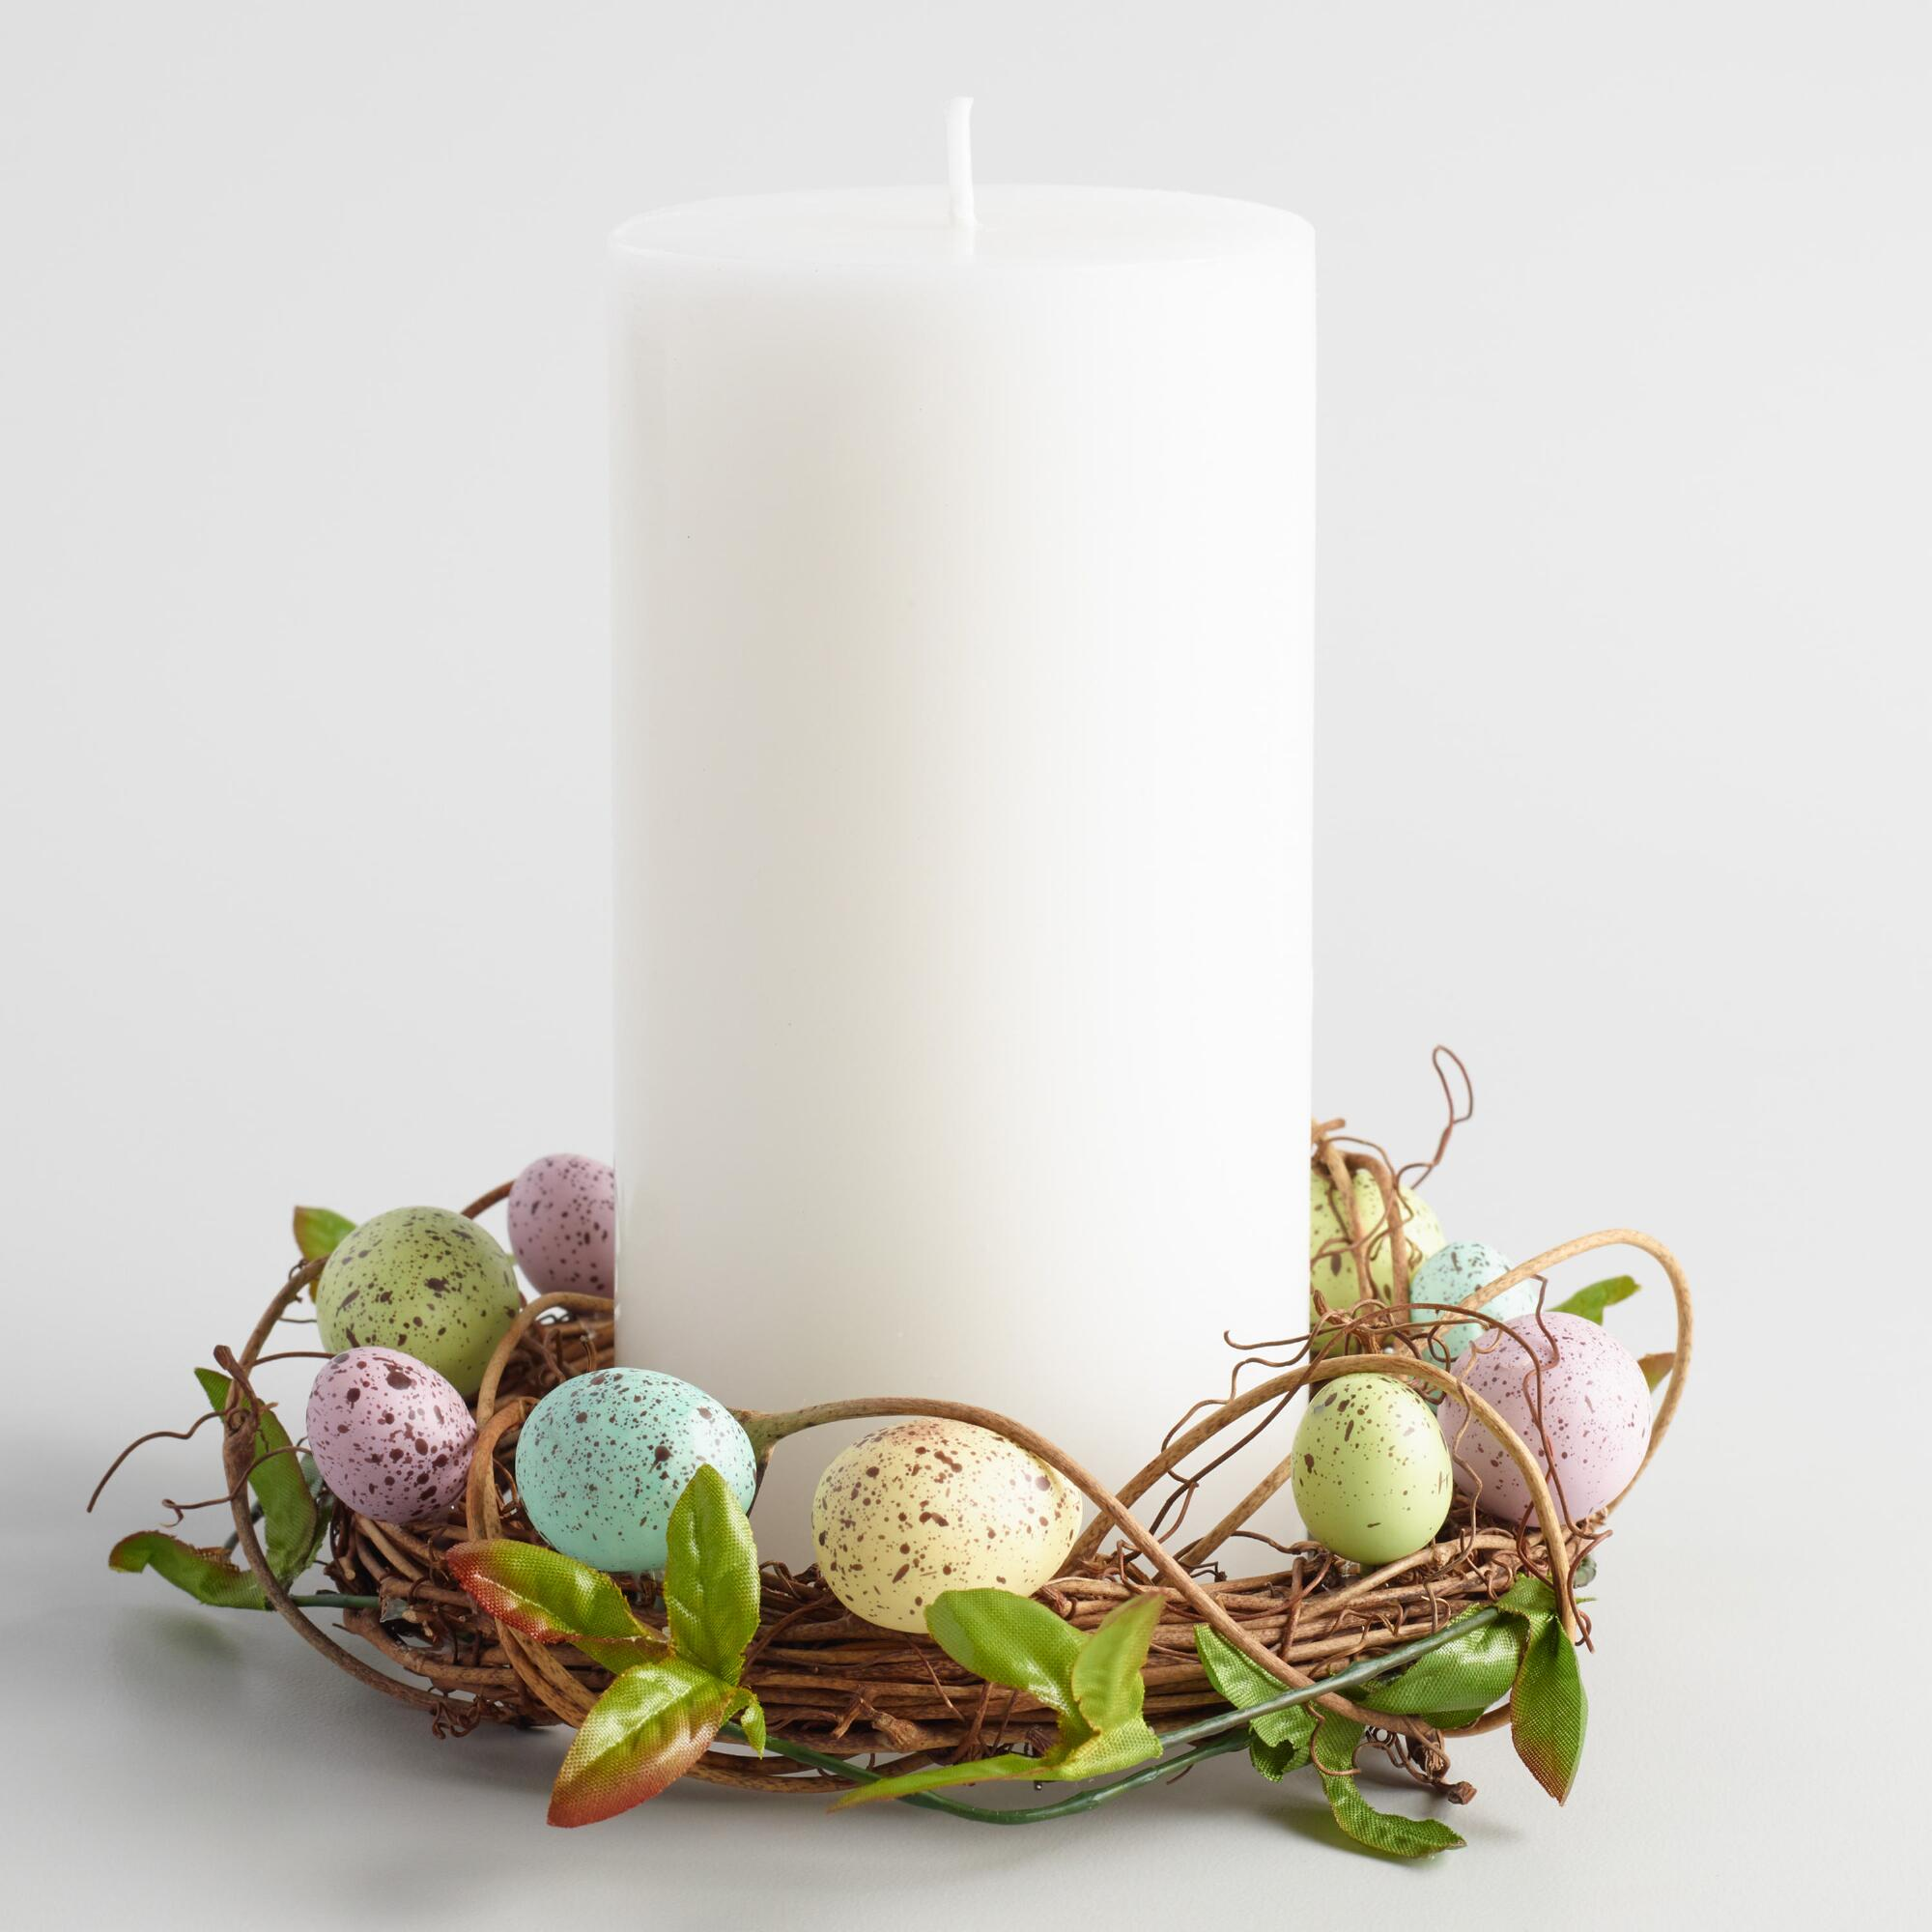 Egg nest candle ring world market for Nest candles where to buy